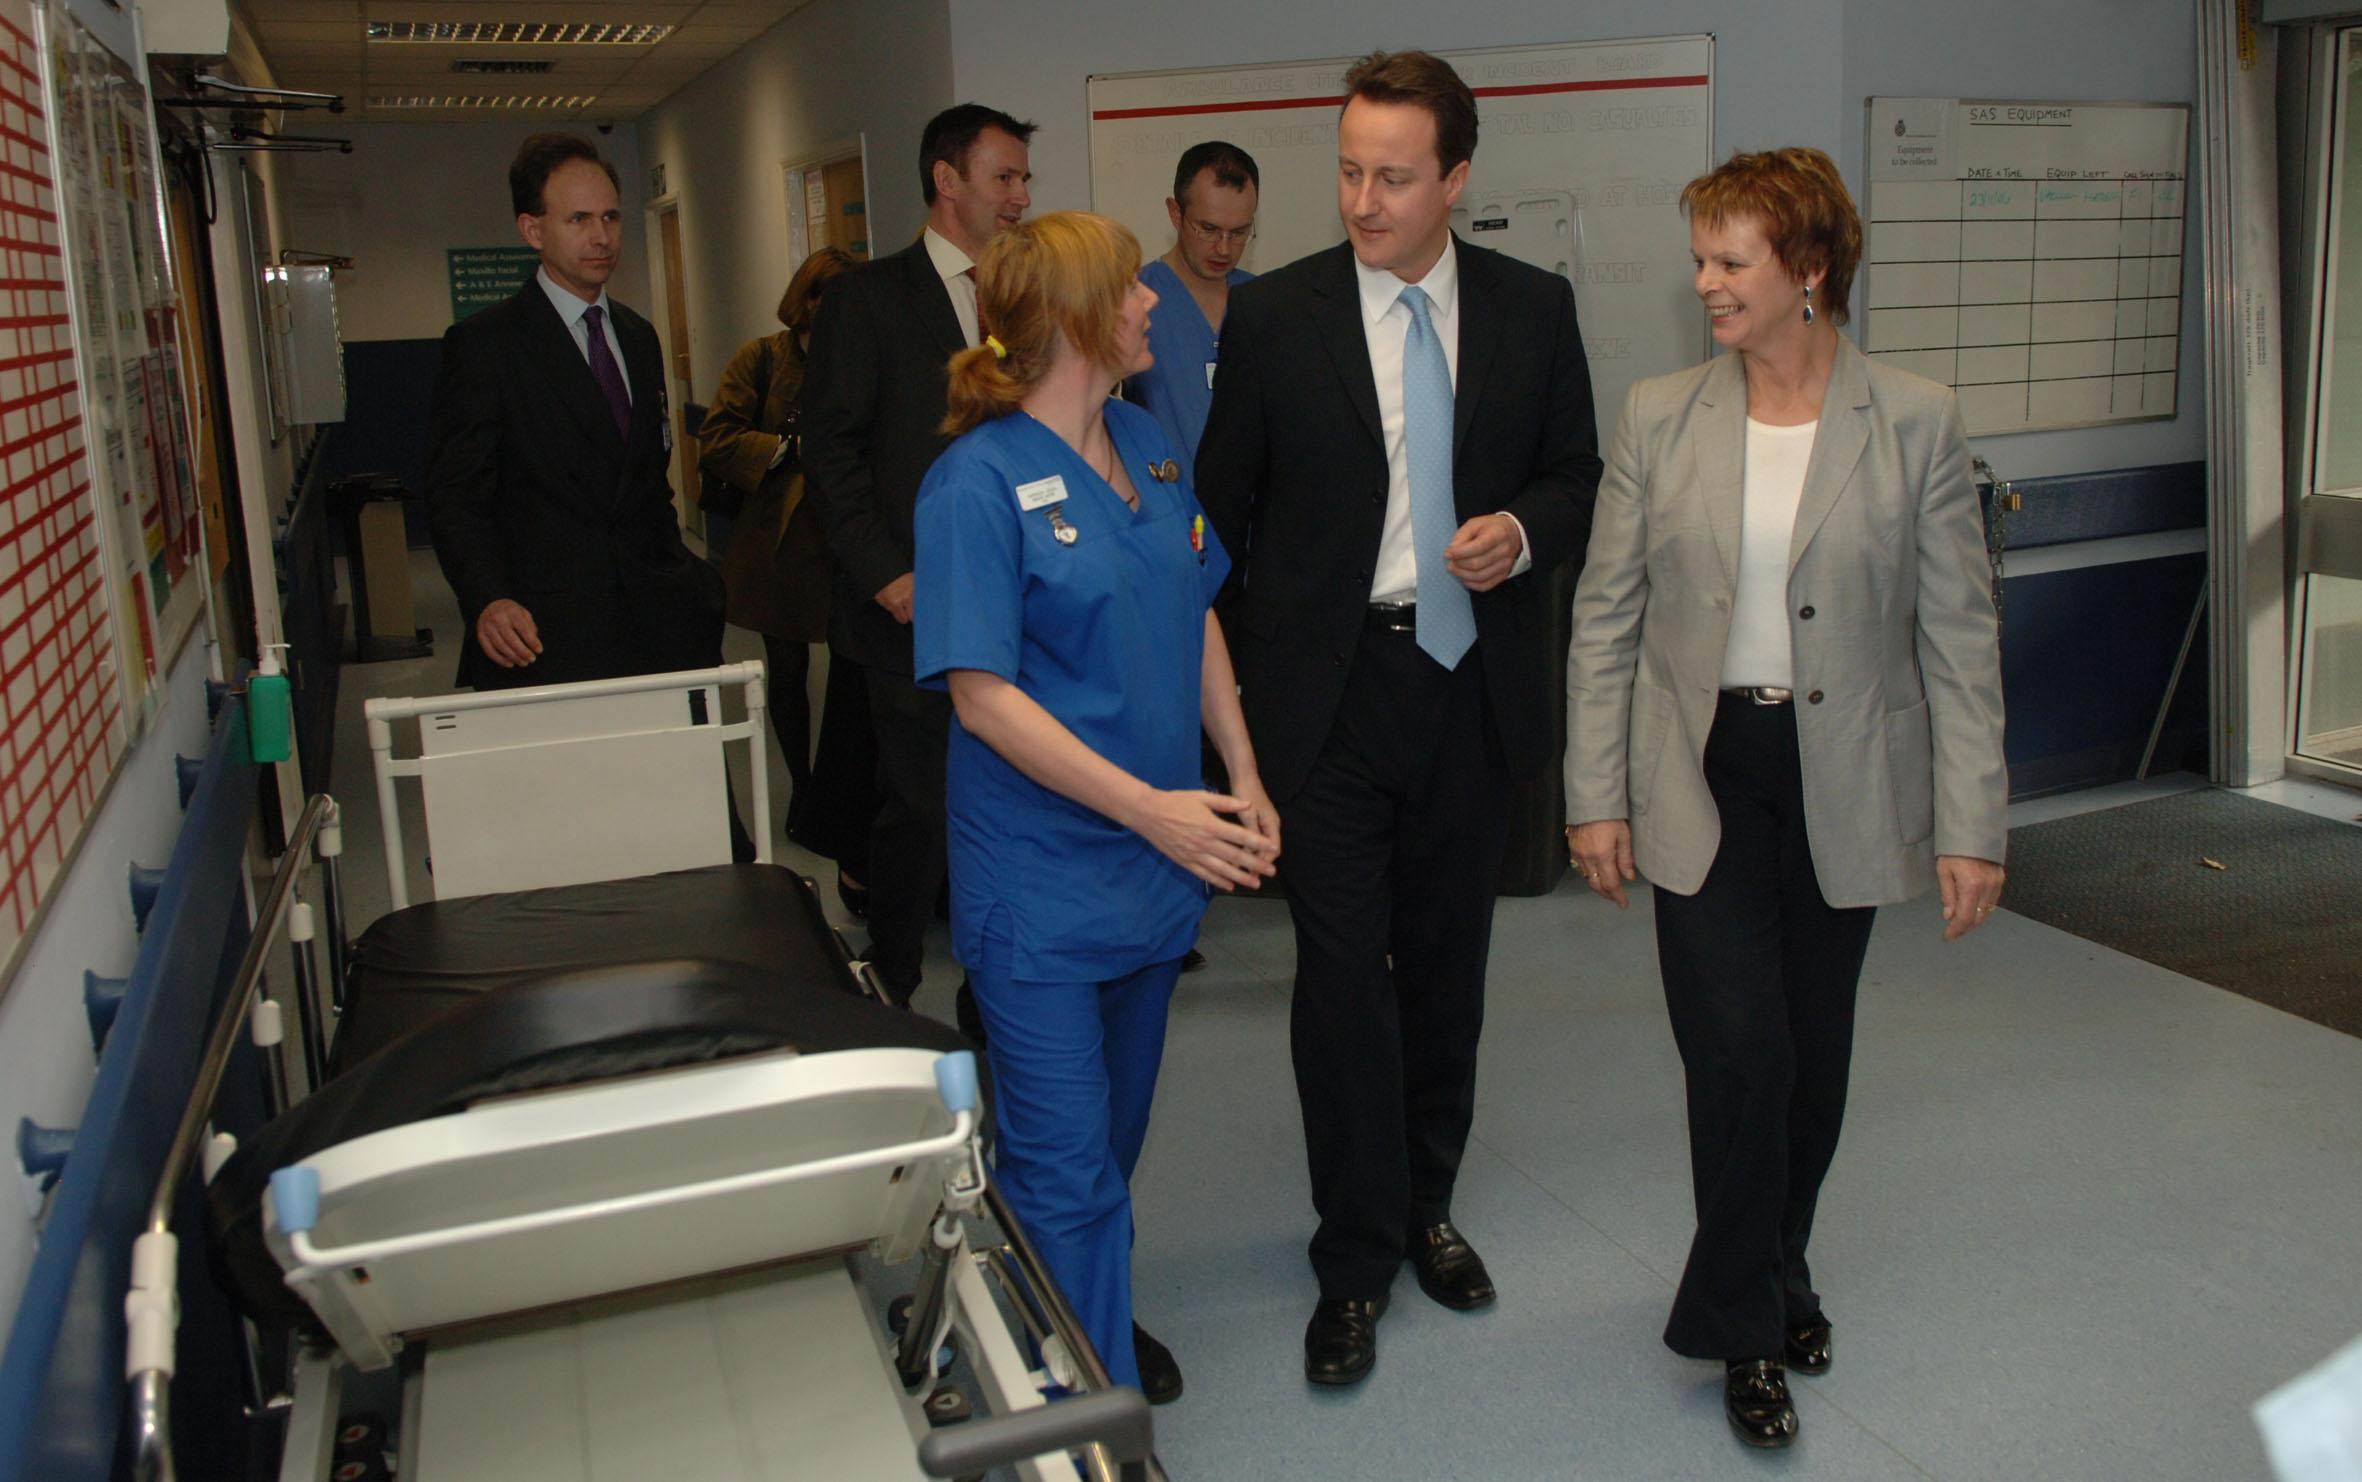 David Cameron and Anne Milton at the Royal Surrey Hospital in Guildford